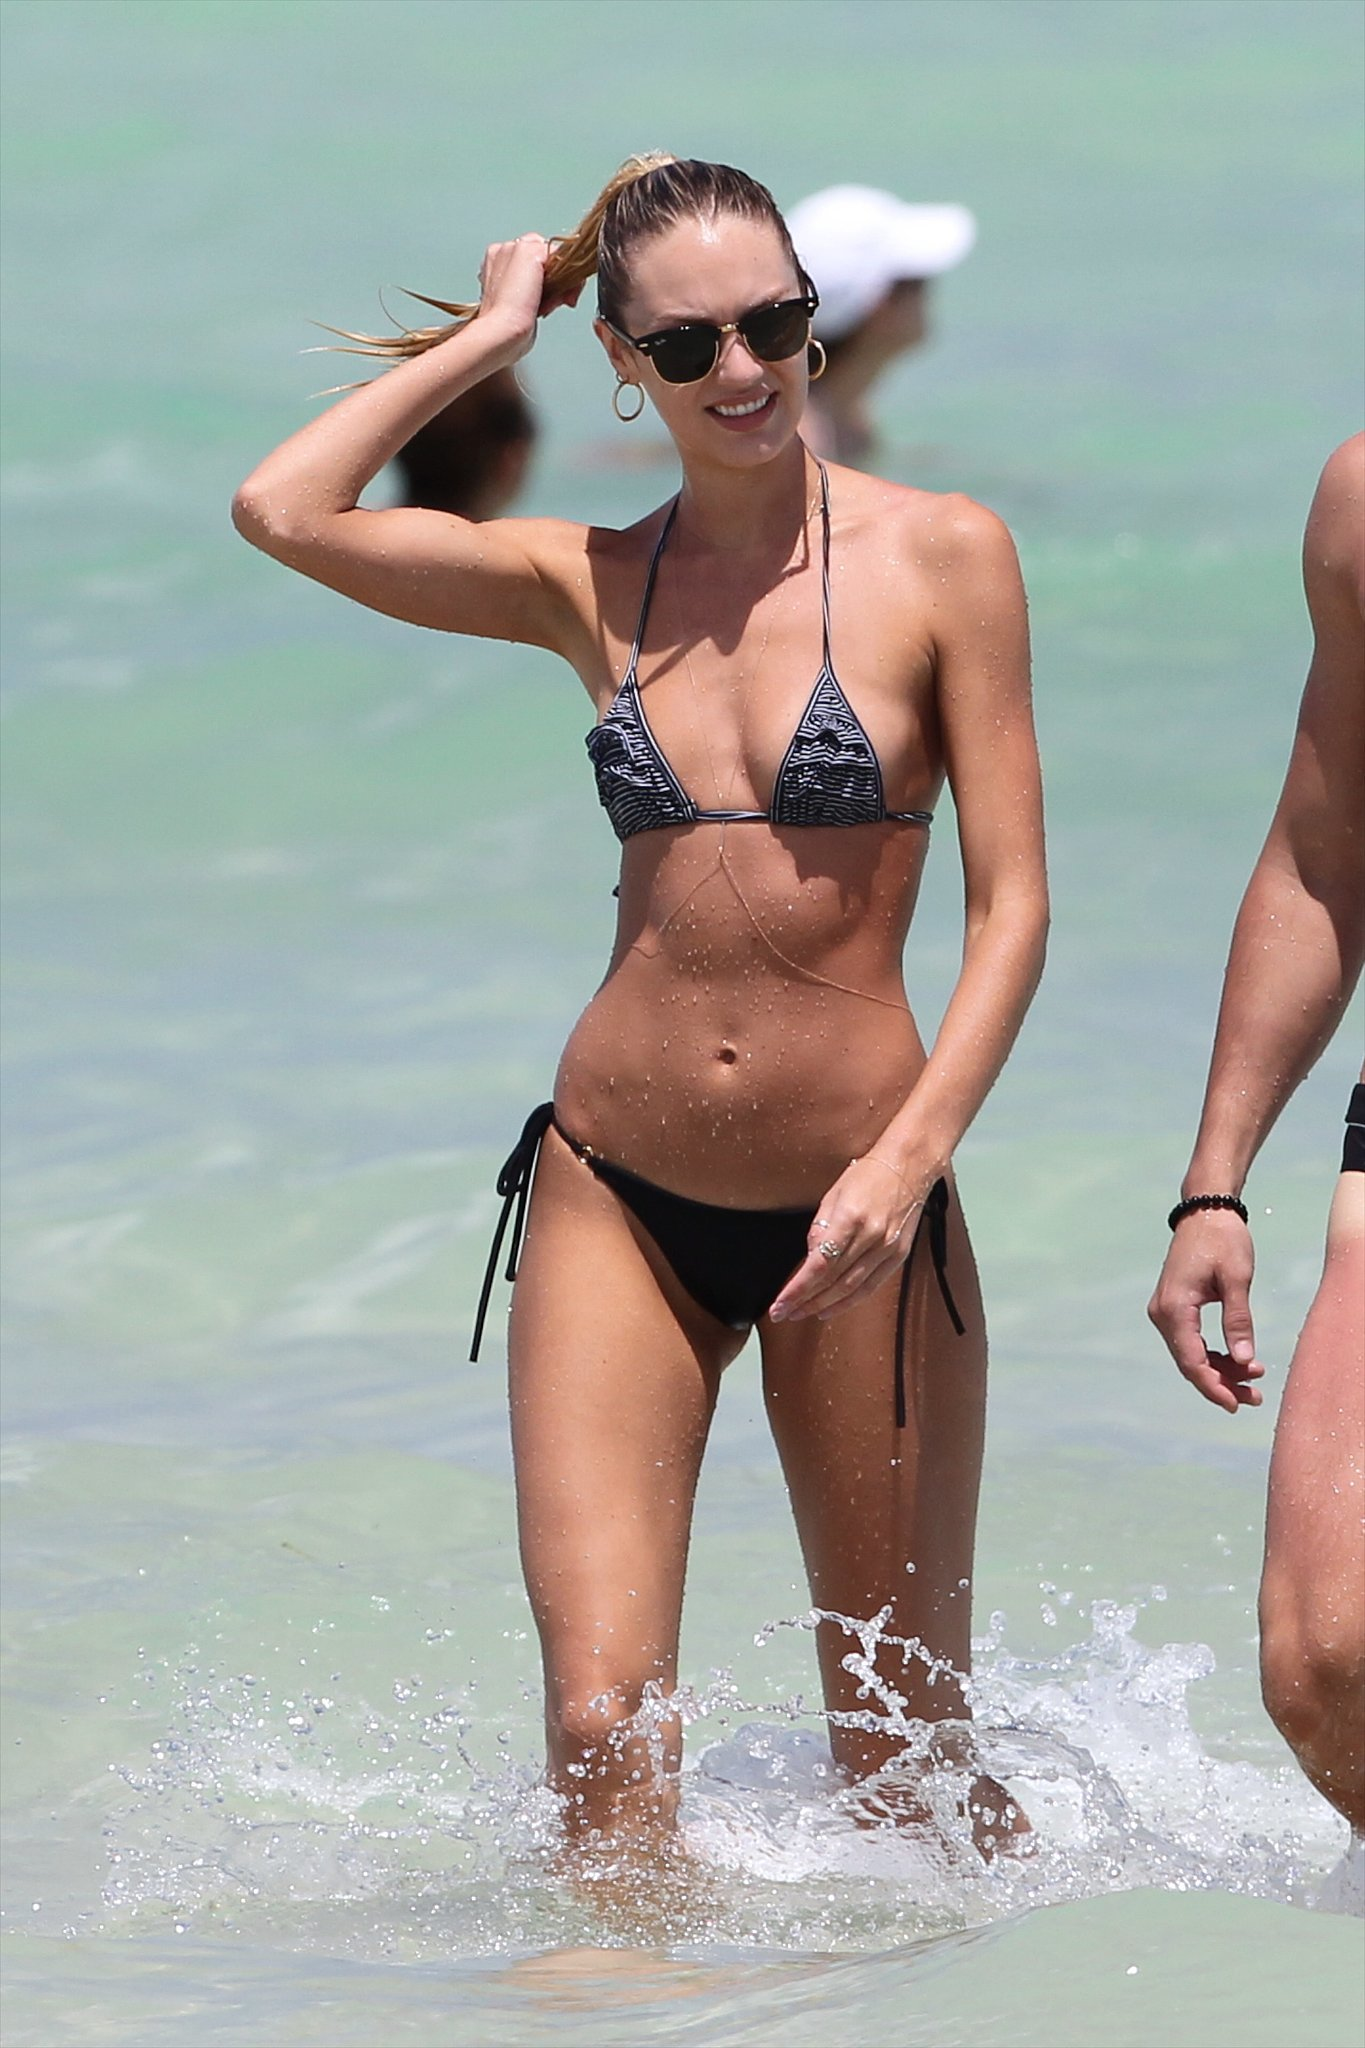 She Makes Getting Out of the Ocean Look Hot